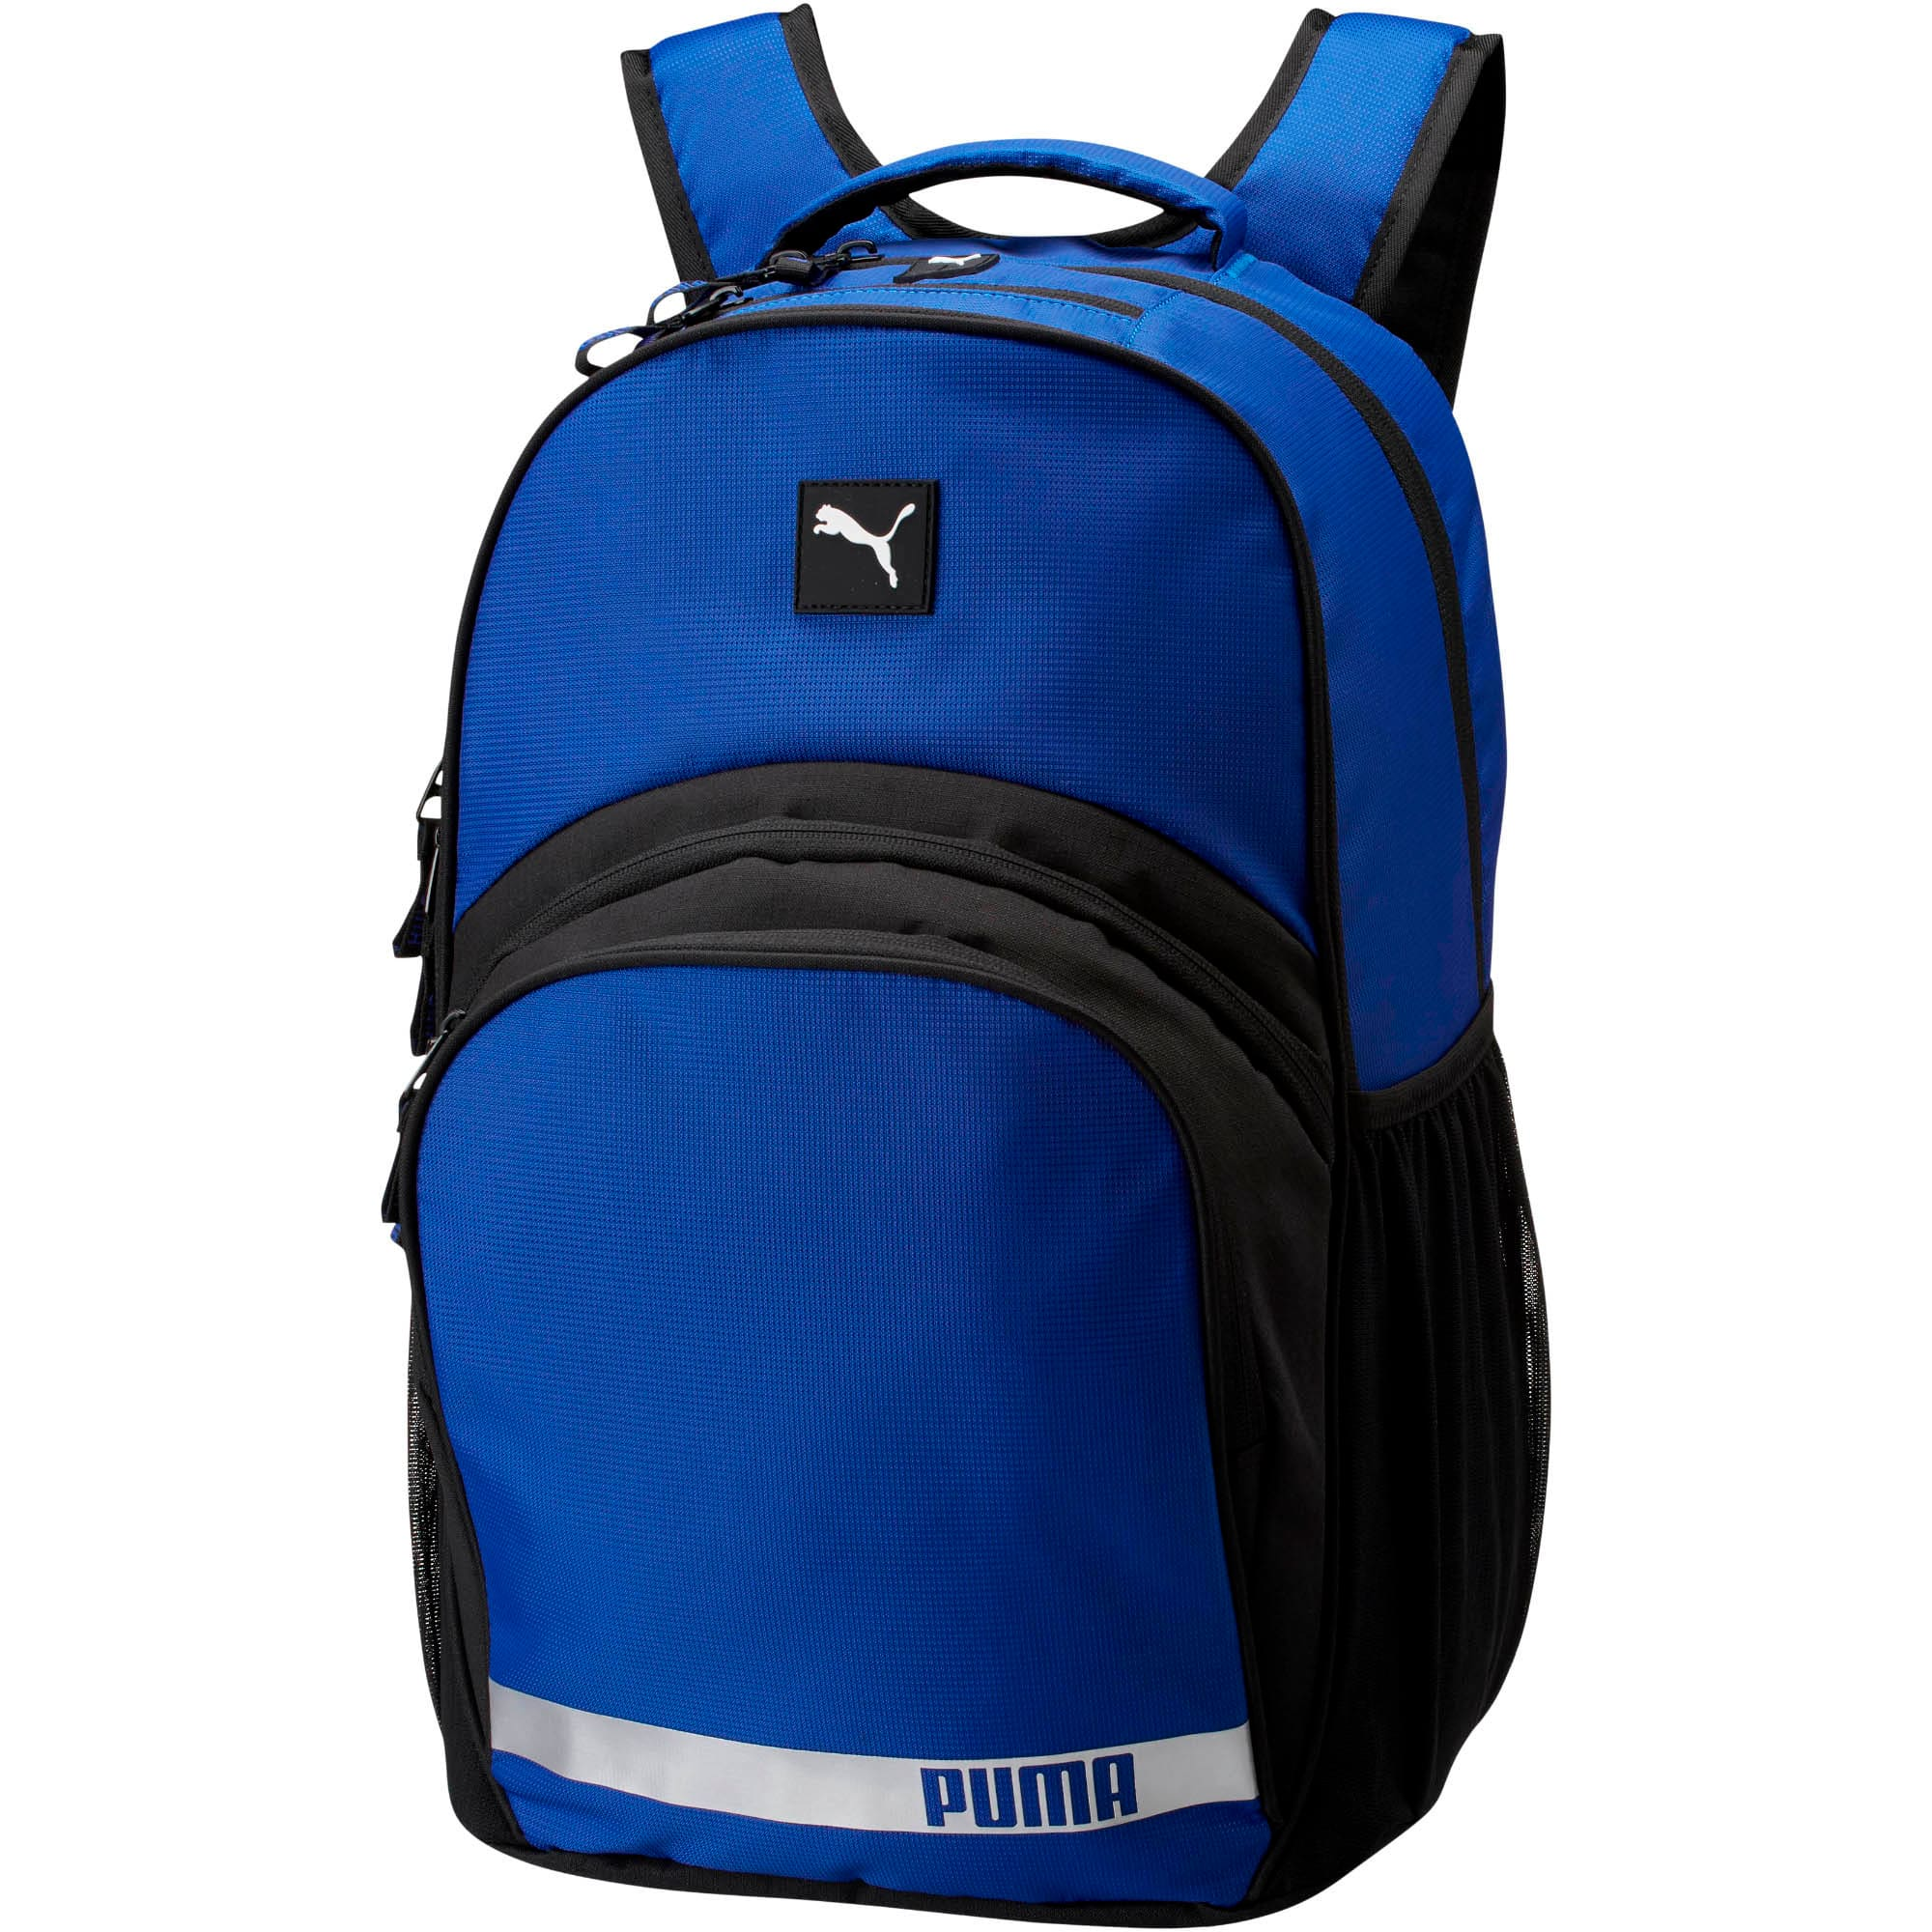 Thumbnail 1 of Formation 2.0 Ball Backpack, Blue, medium